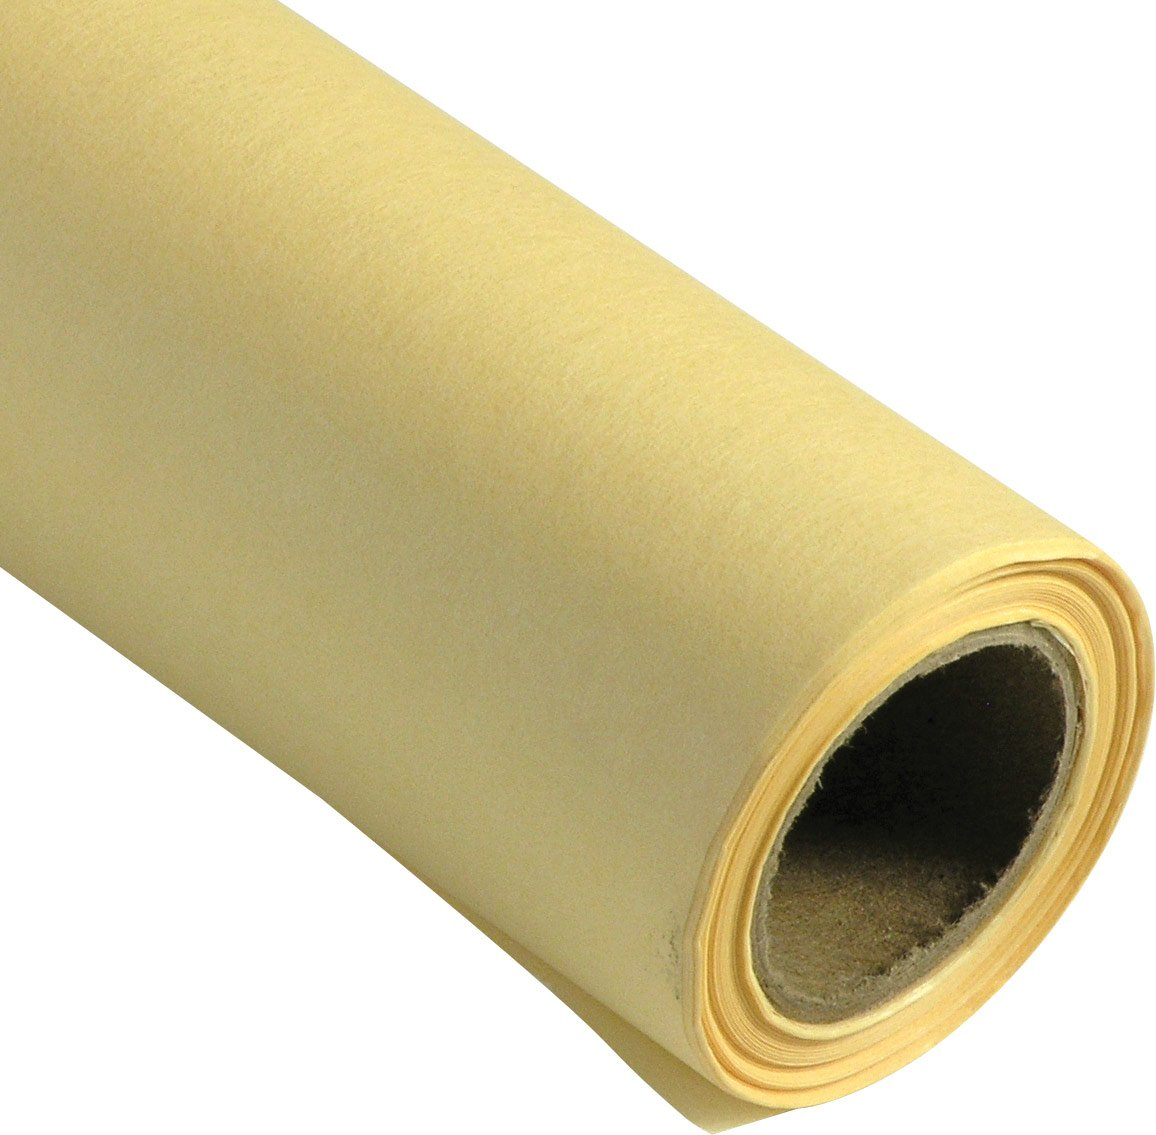 Bee Paper White Sketch and Trace Roll 18-Inch by 20-Yards